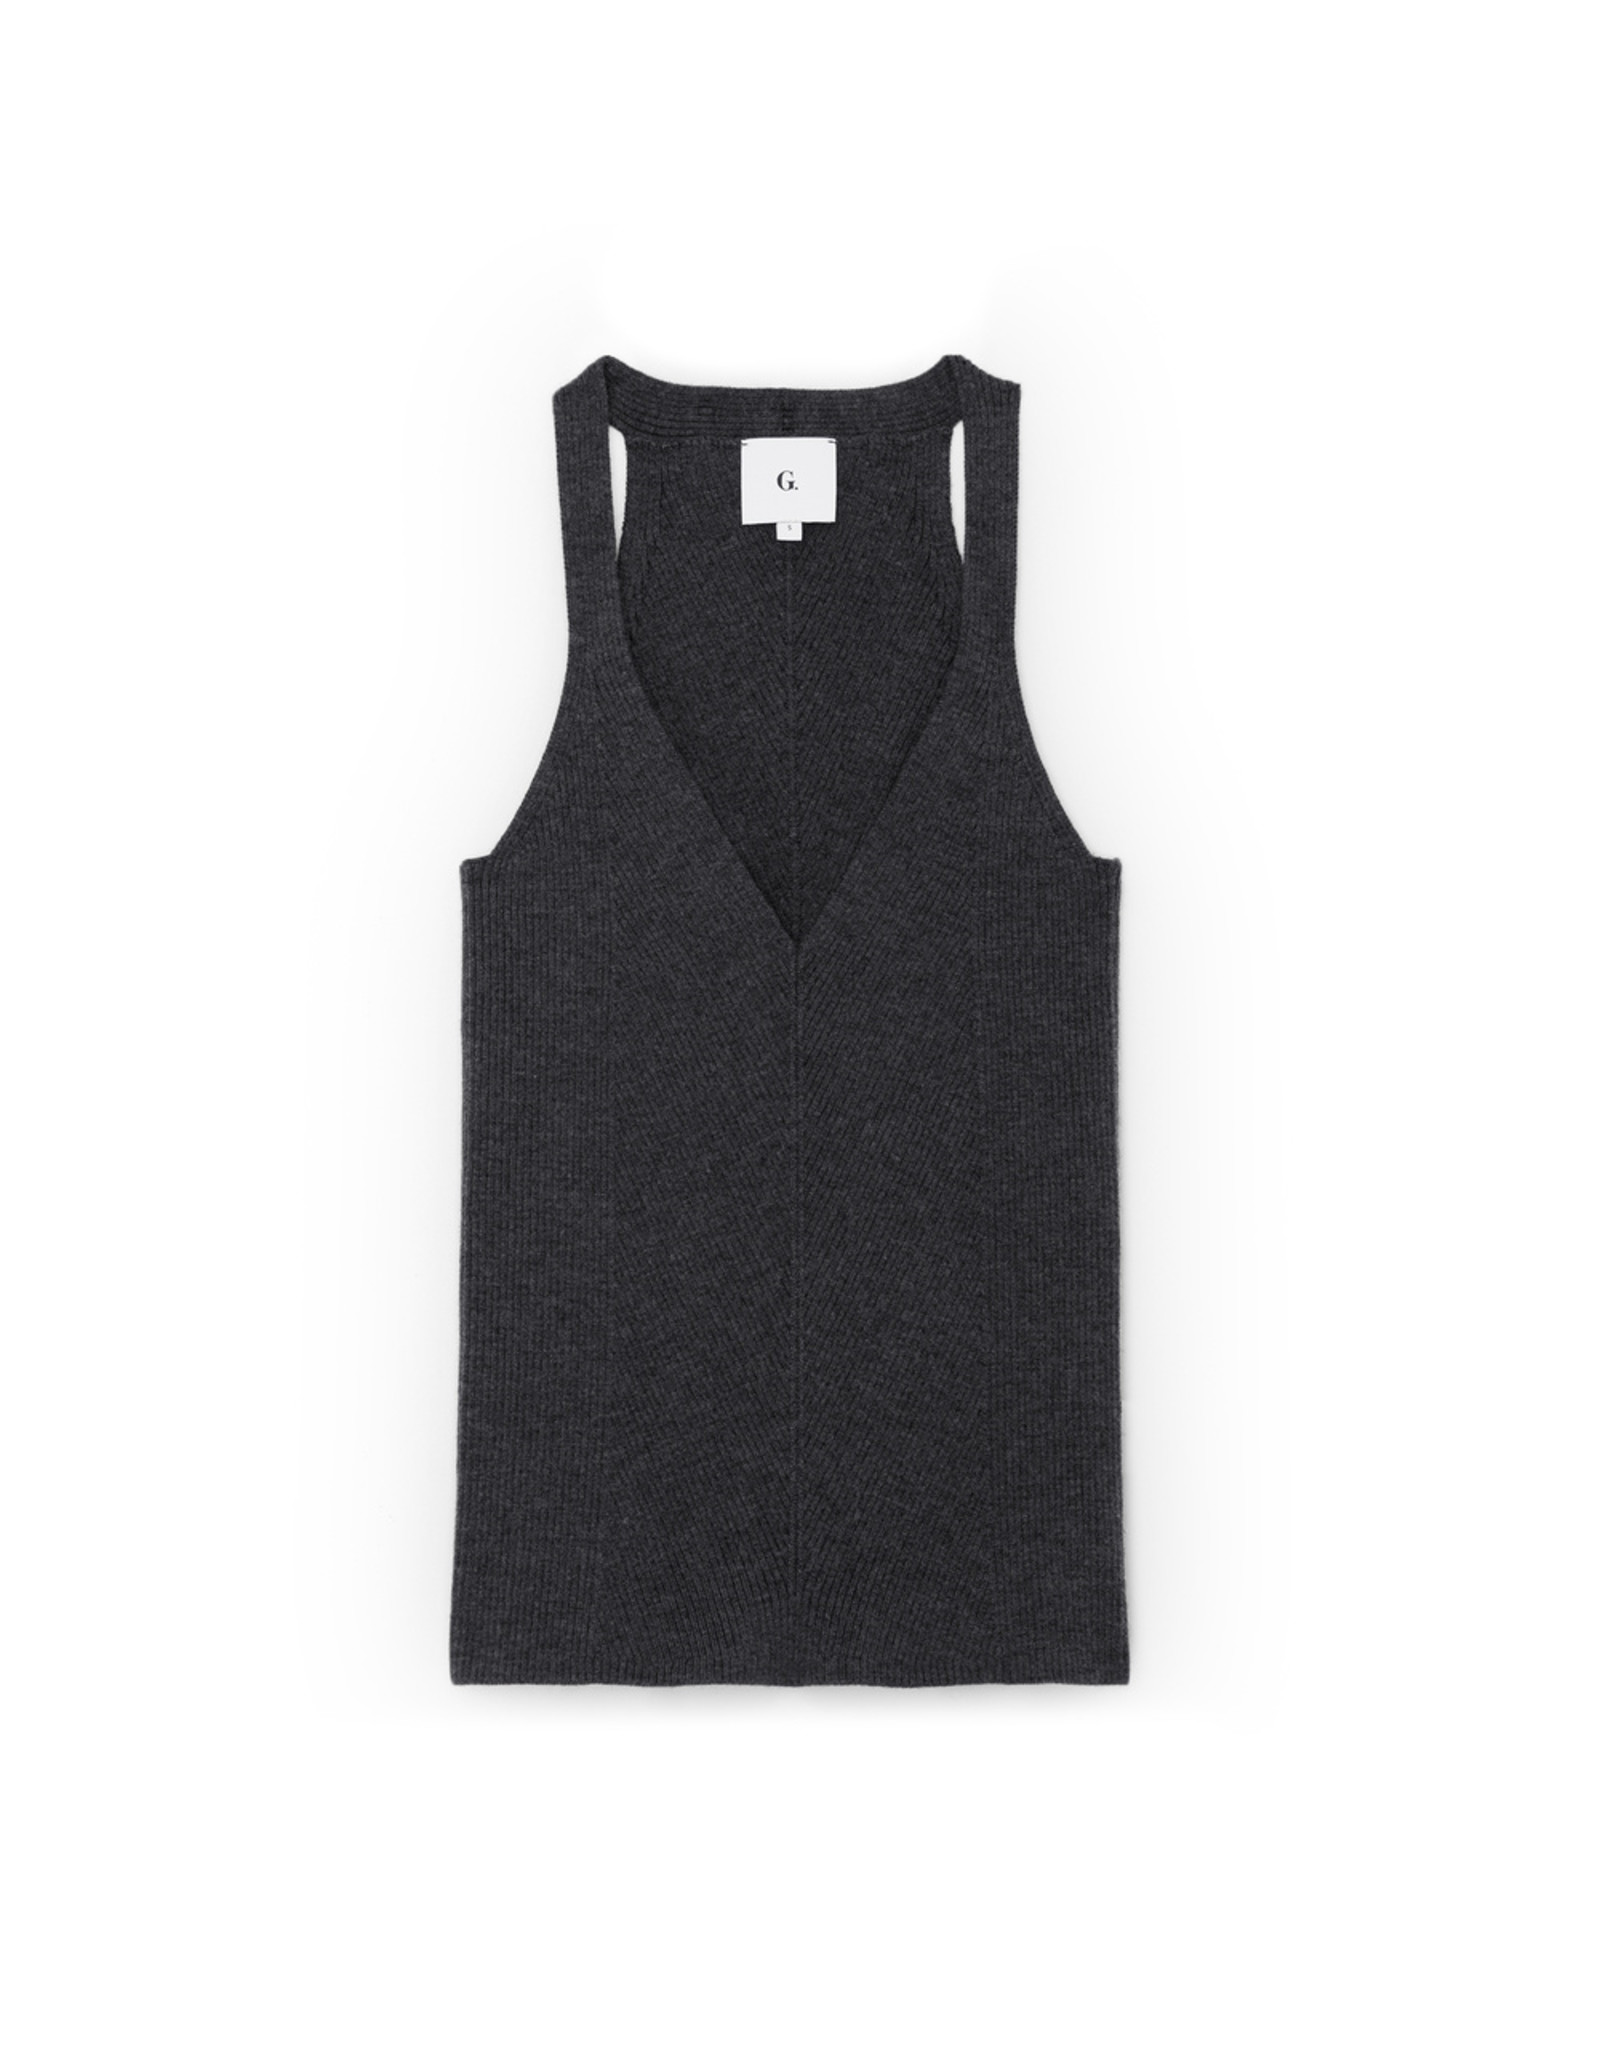 G. Label G. Label Samantha Engineered-Rib Tank (Color: Charcoal, Size: XS)